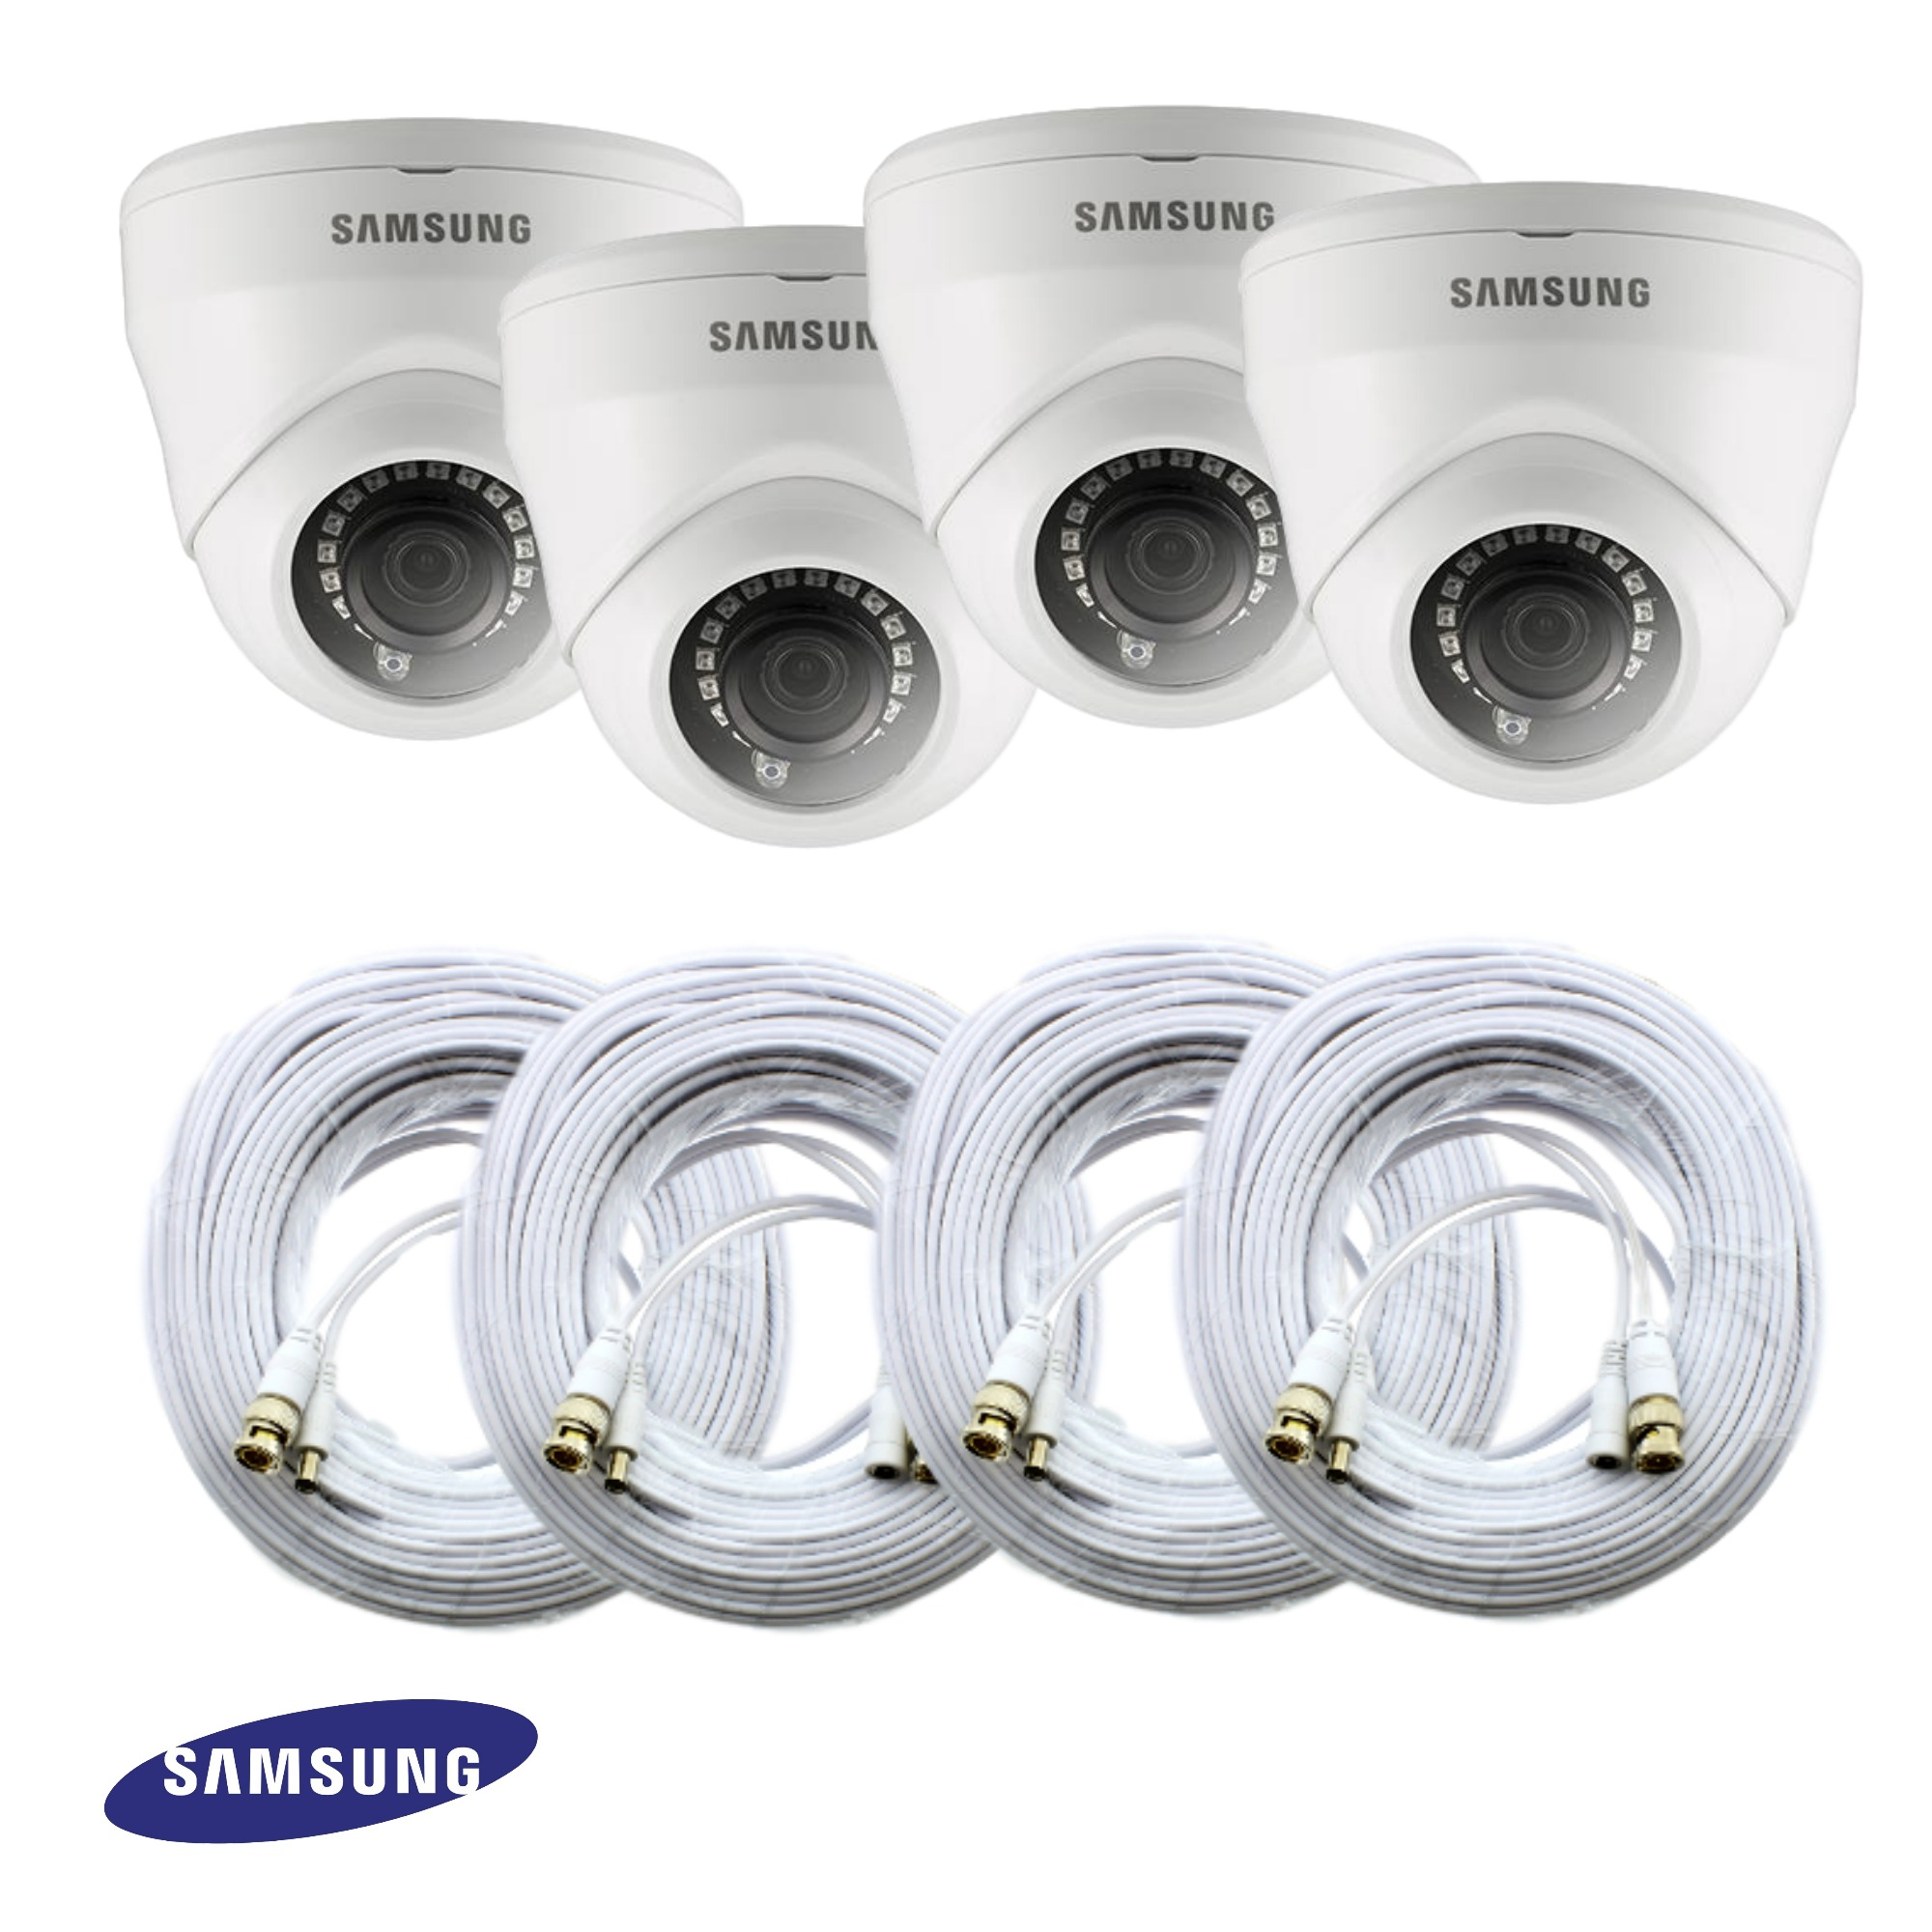 sdc 9443df set of 4 samsung 2mp hd dome security camera kit. Black Bedroom Furniture Sets. Home Design Ideas